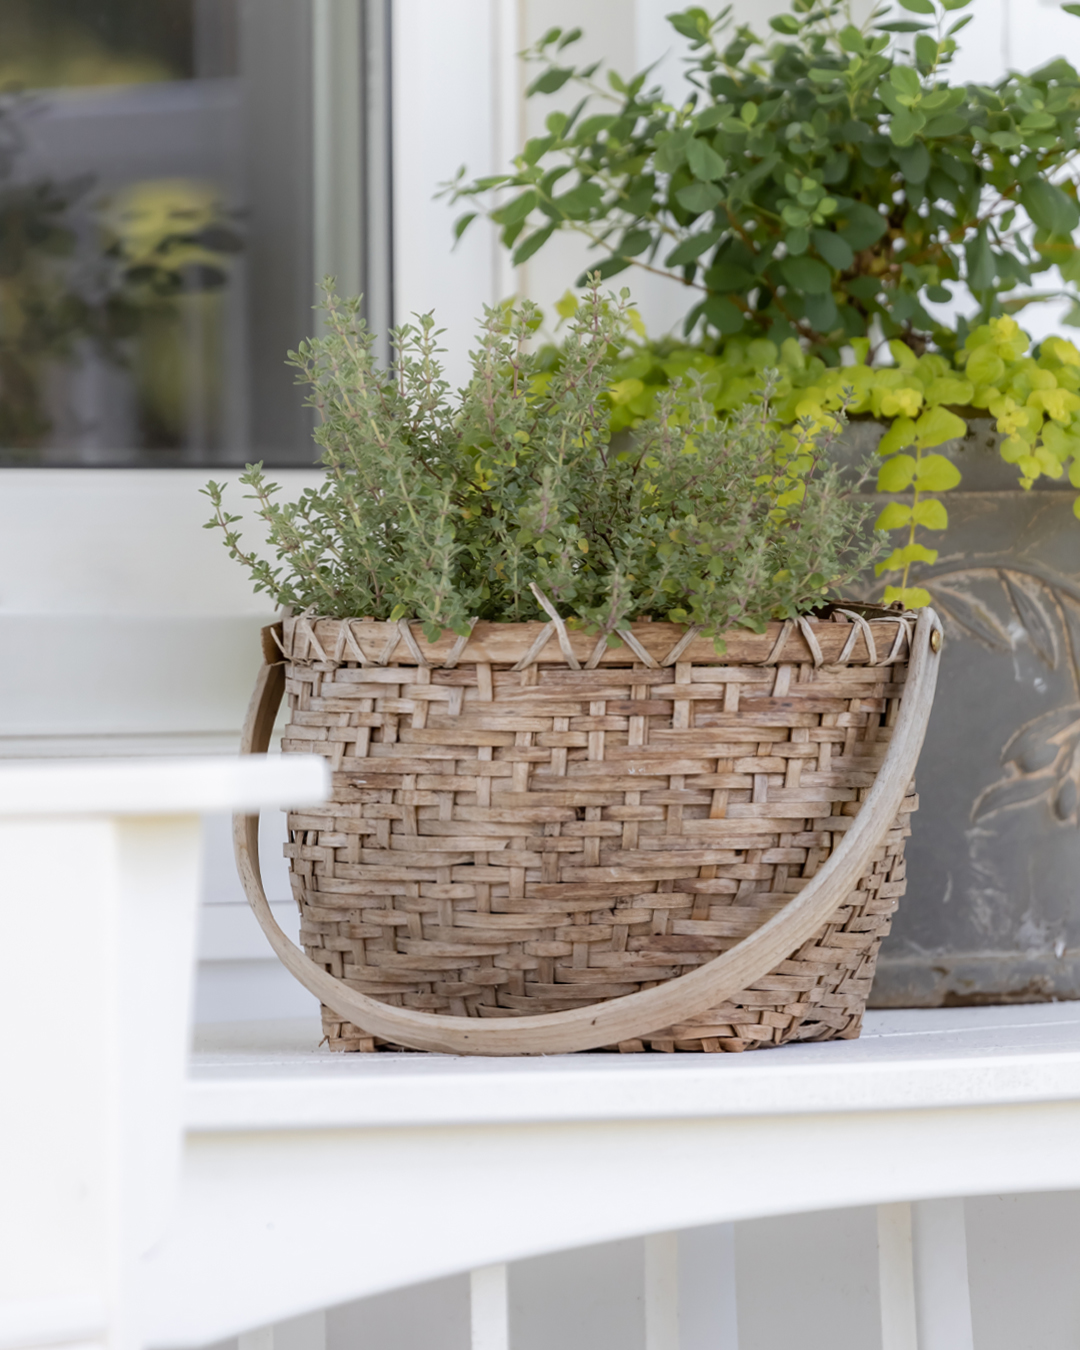 I love filling my planters every spring, but having to get rid of all those plants at the end of the season always makes me so sad. So here are some great perennial planters ideas that you can reuse year after year!